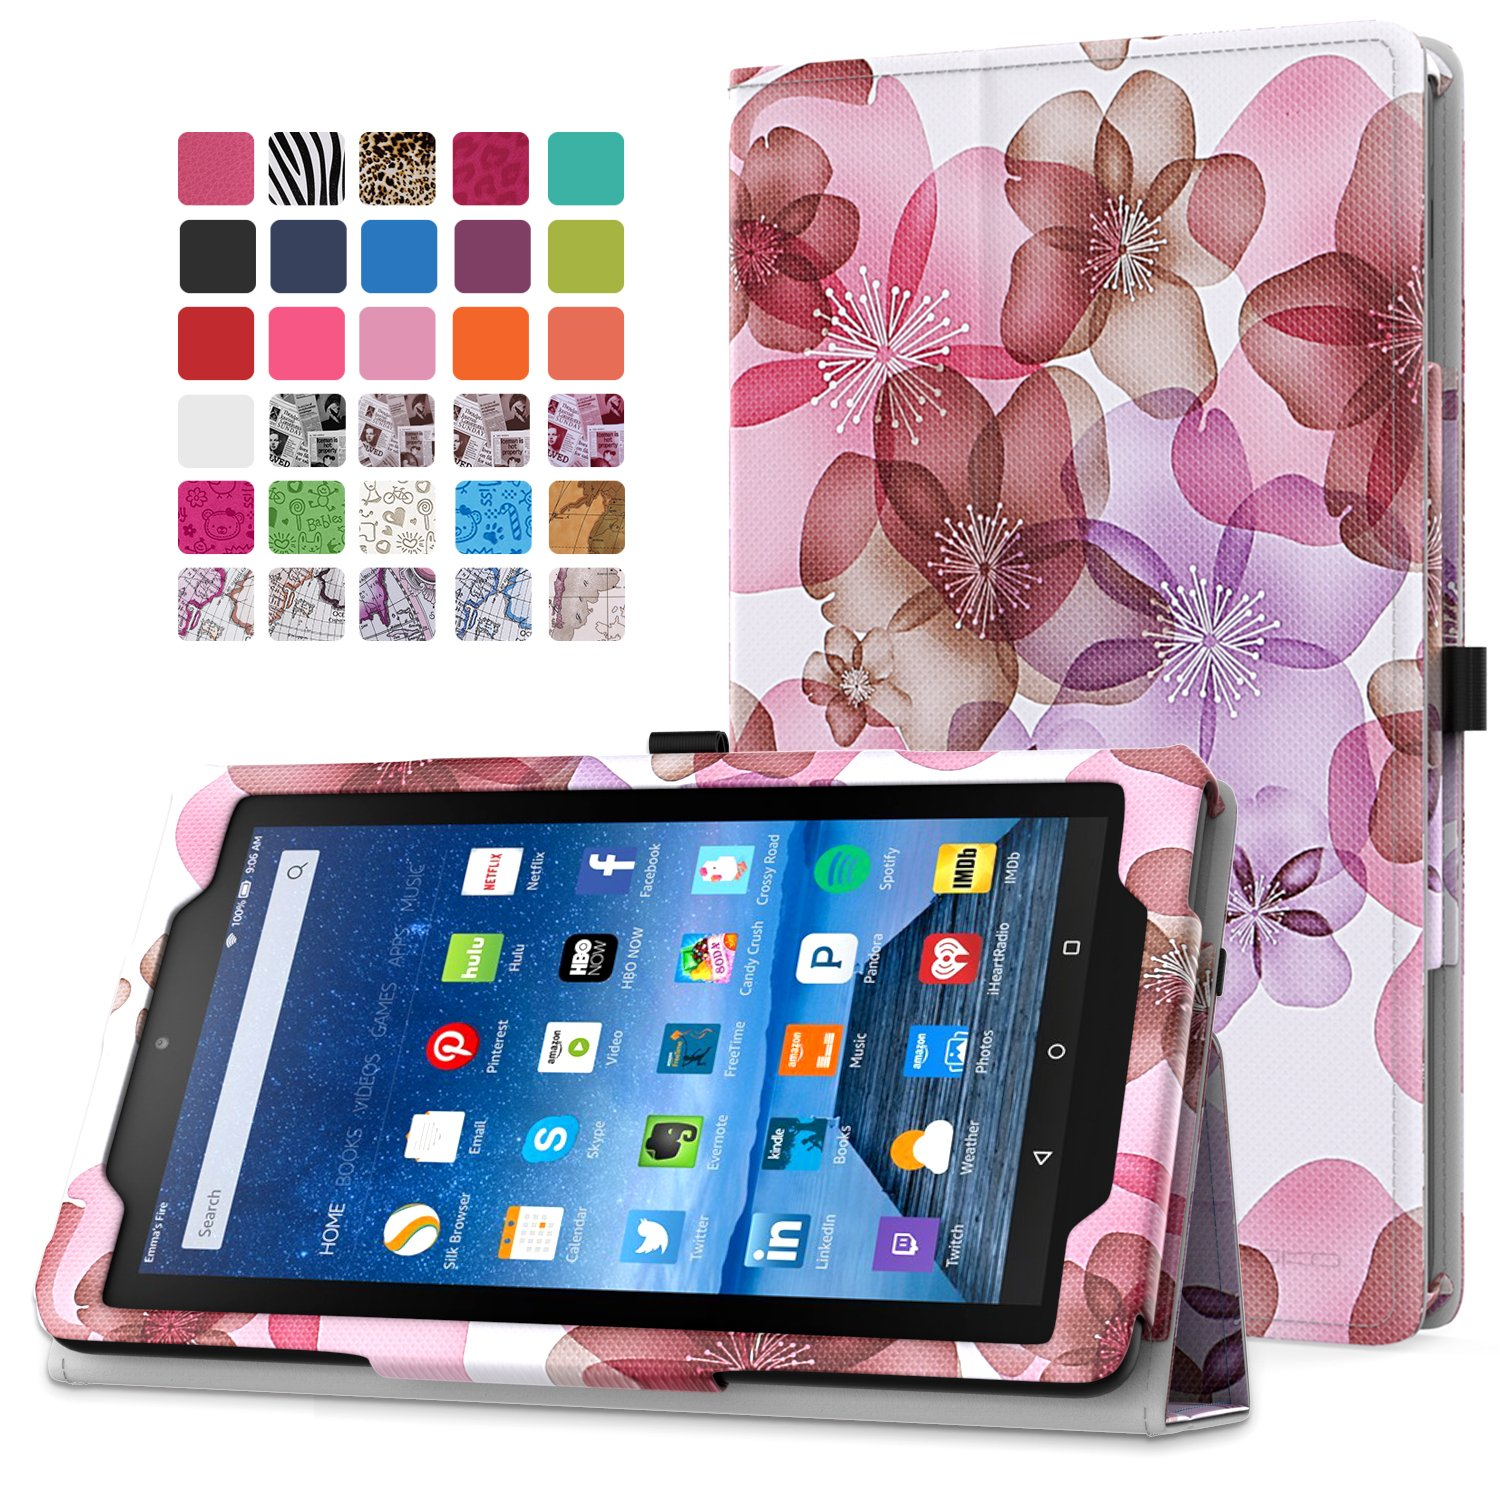 MoKo Fire 7 2015 Case - Slim Folding Cover for Amazon Fire Tablet (7 inch Display - 5th Generation, 2015 Release Only), Floral PURPLE